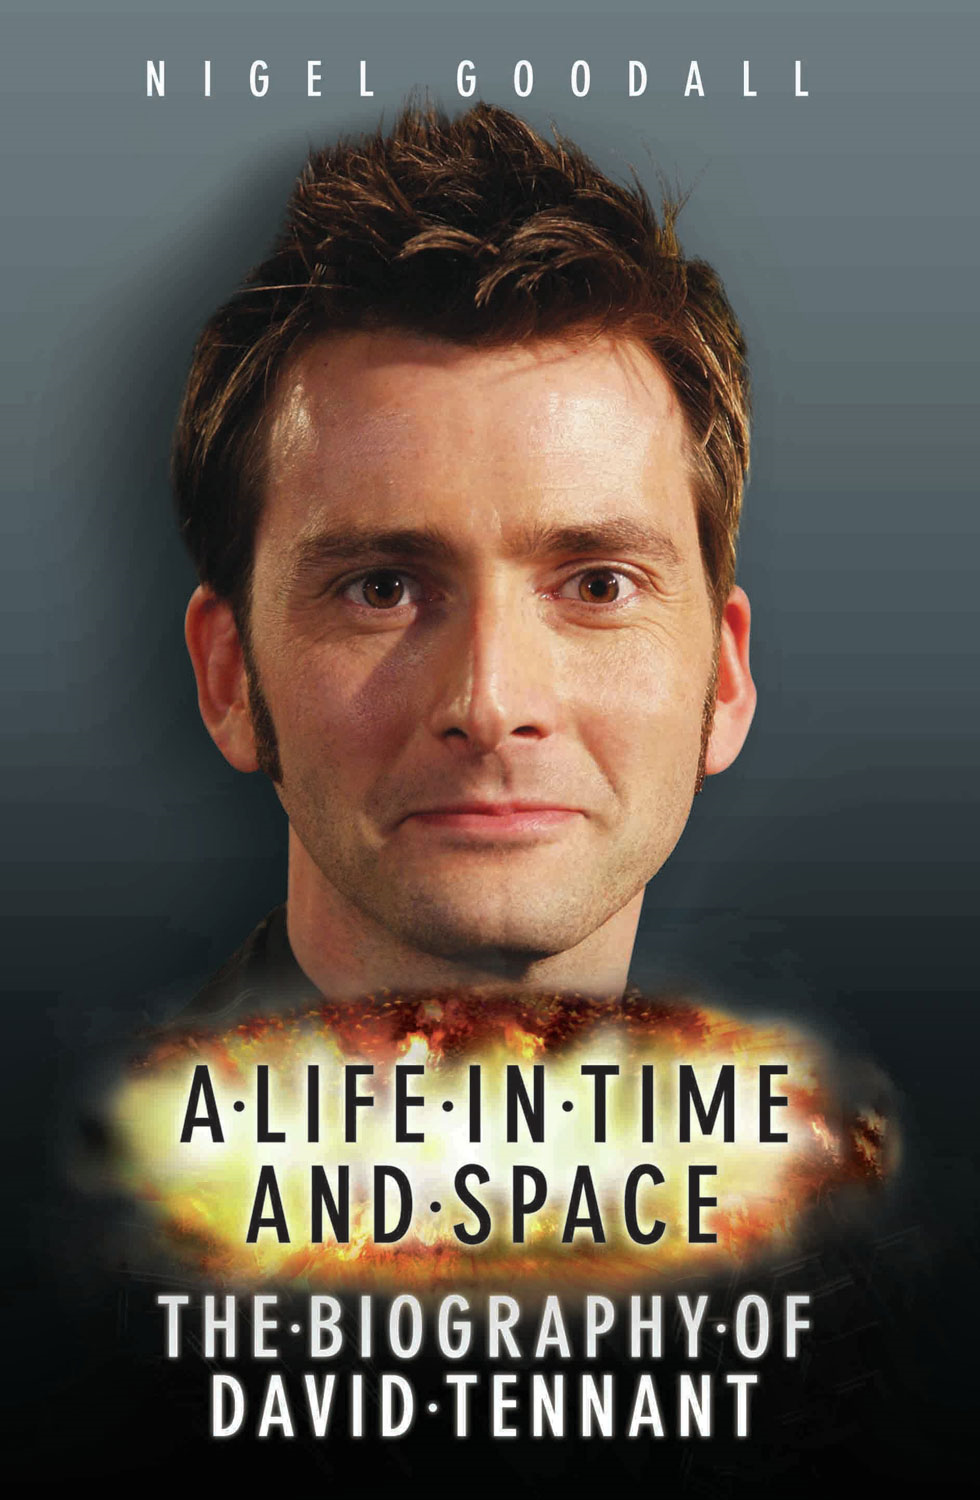 A Life in Time and Space By: Nigel Goodall